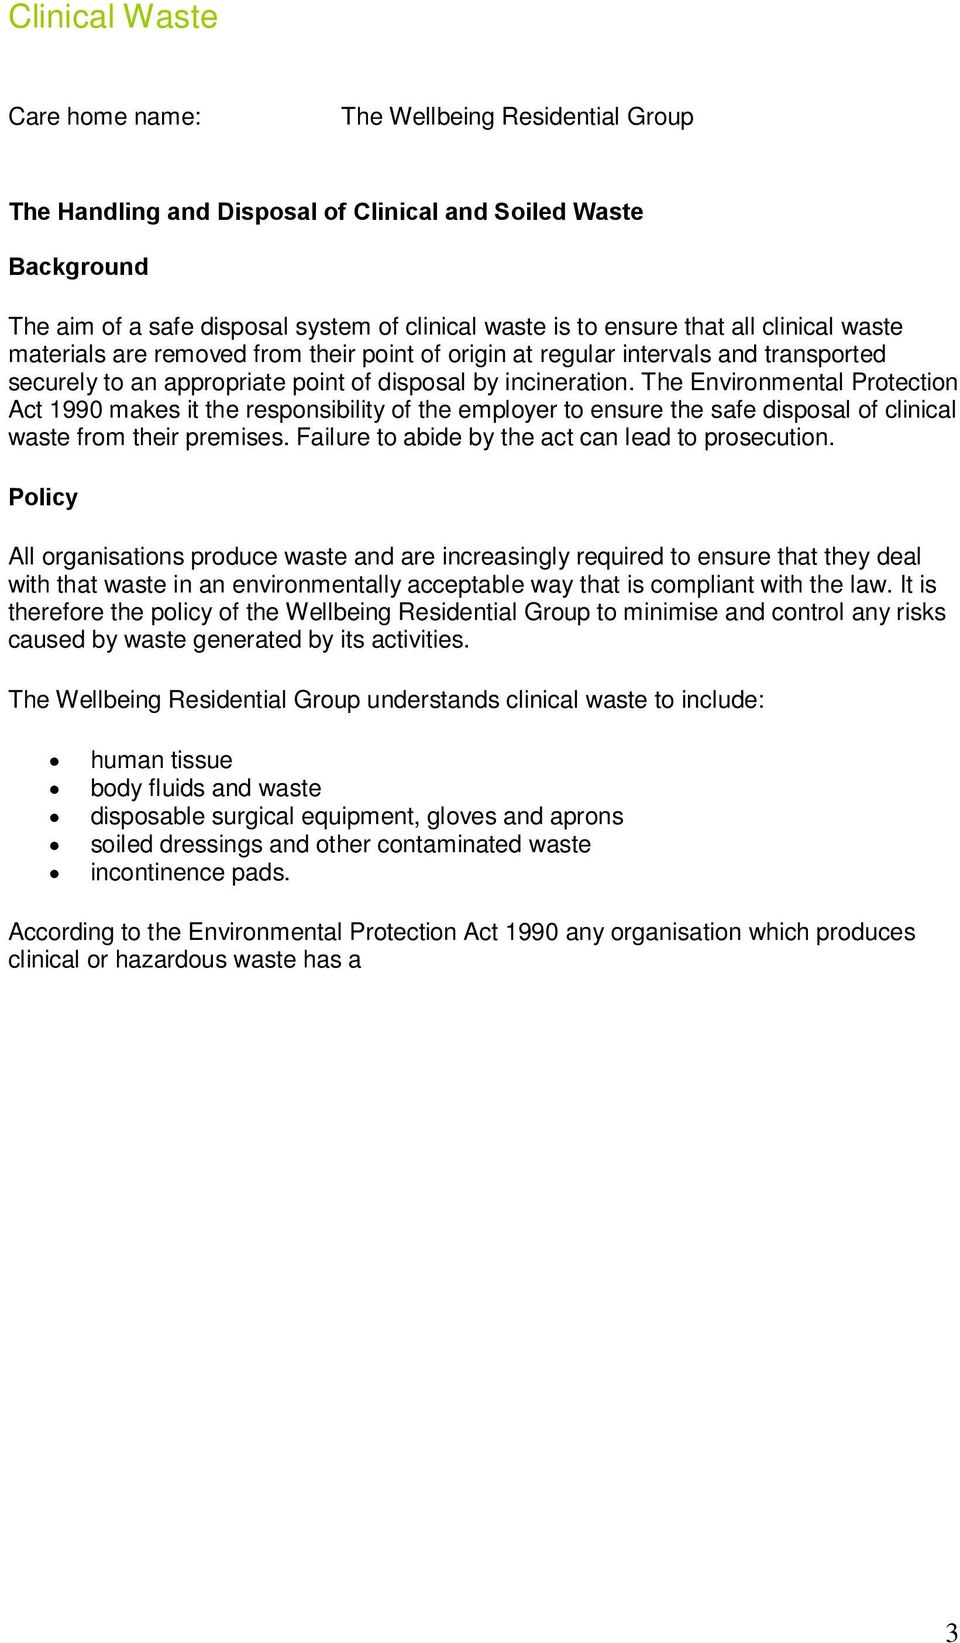 The Environmental Protection Act 1990 makes it the responsibility of the employer to ensure the safe disposal of clinical waste from their premises.